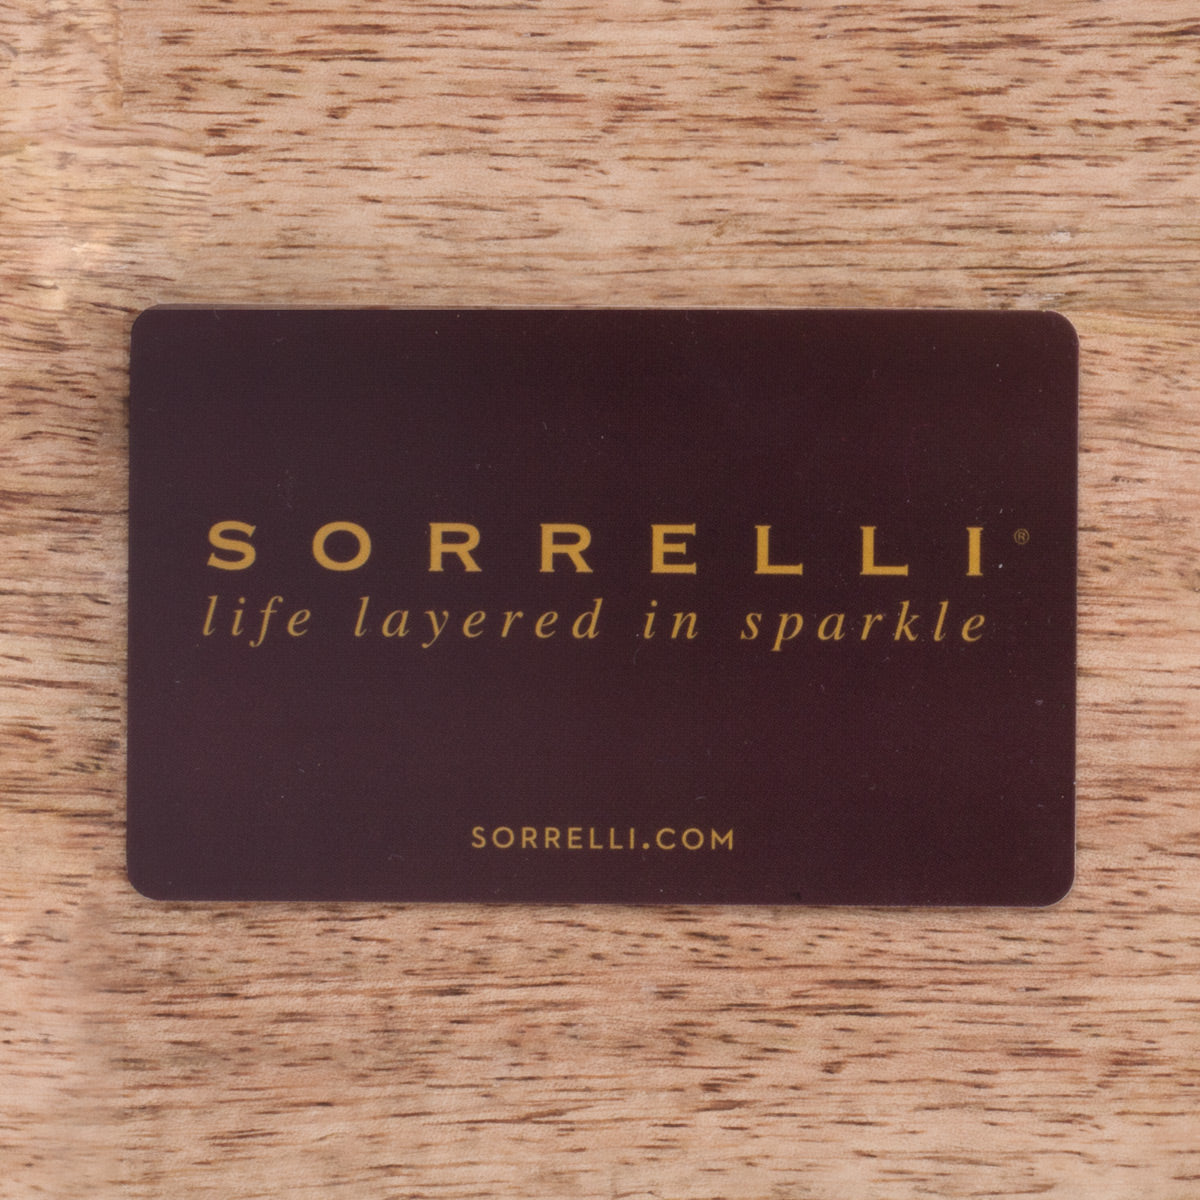 Sorrelli Gift Cards